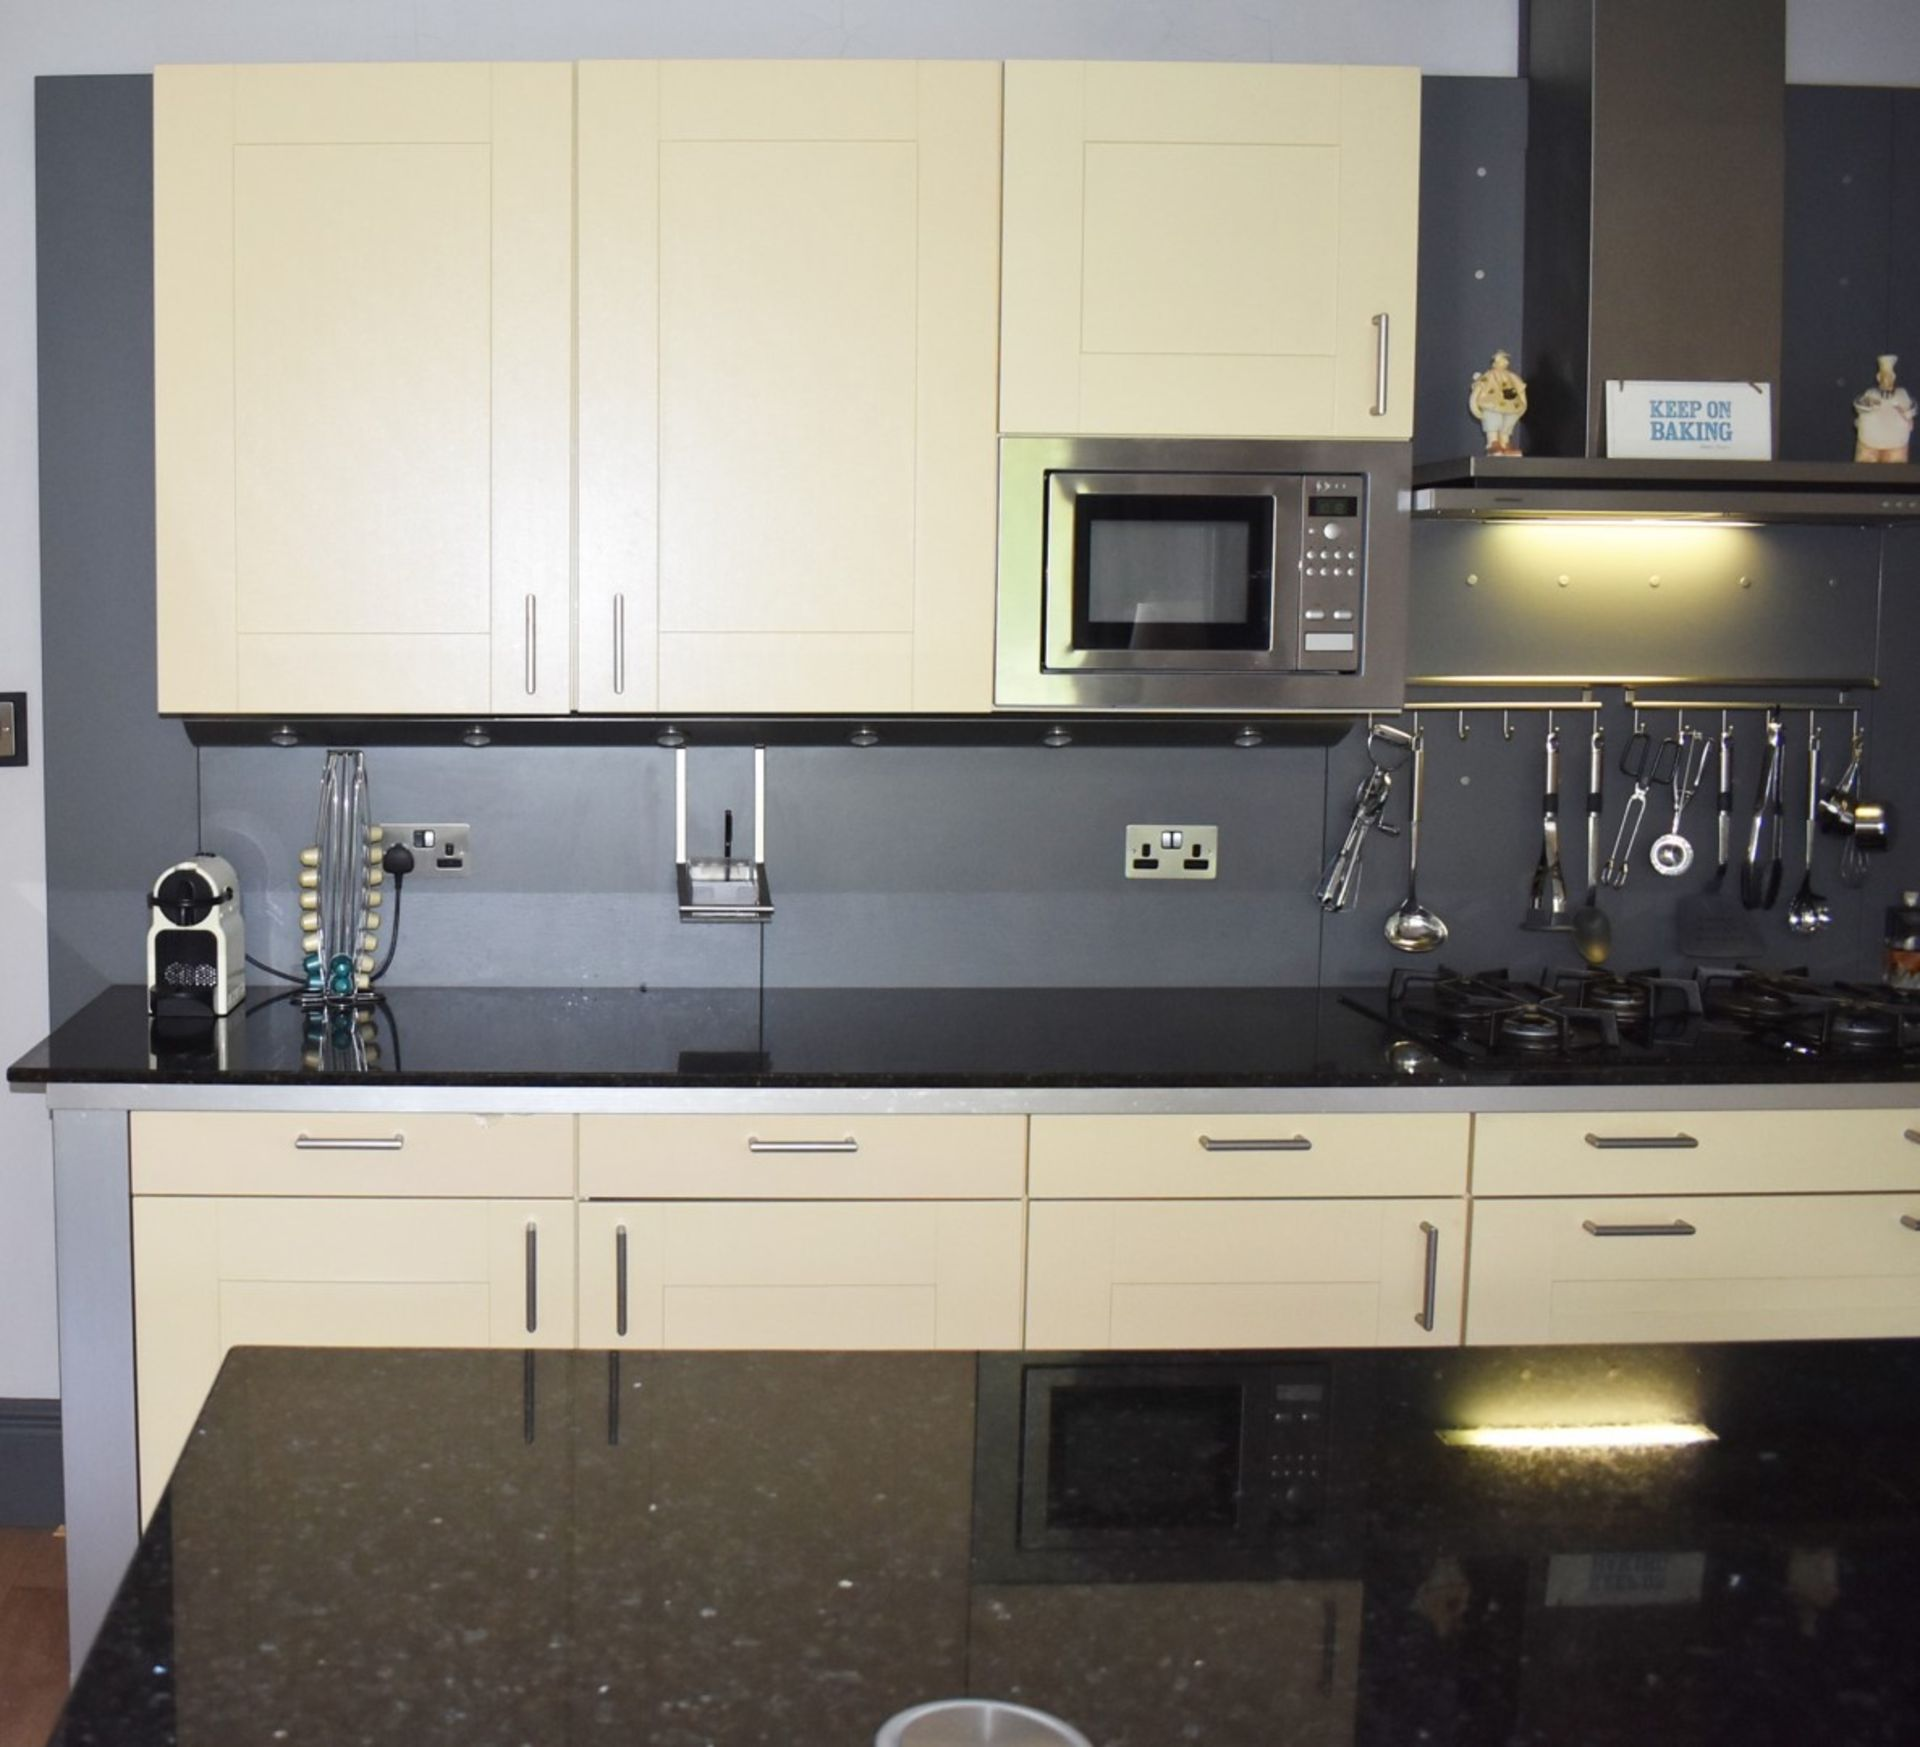 1 x SieMatic Contemporary Fitted Kitchen With Appliances - Features Shaker Style Doors, Central - Image 78 of 96